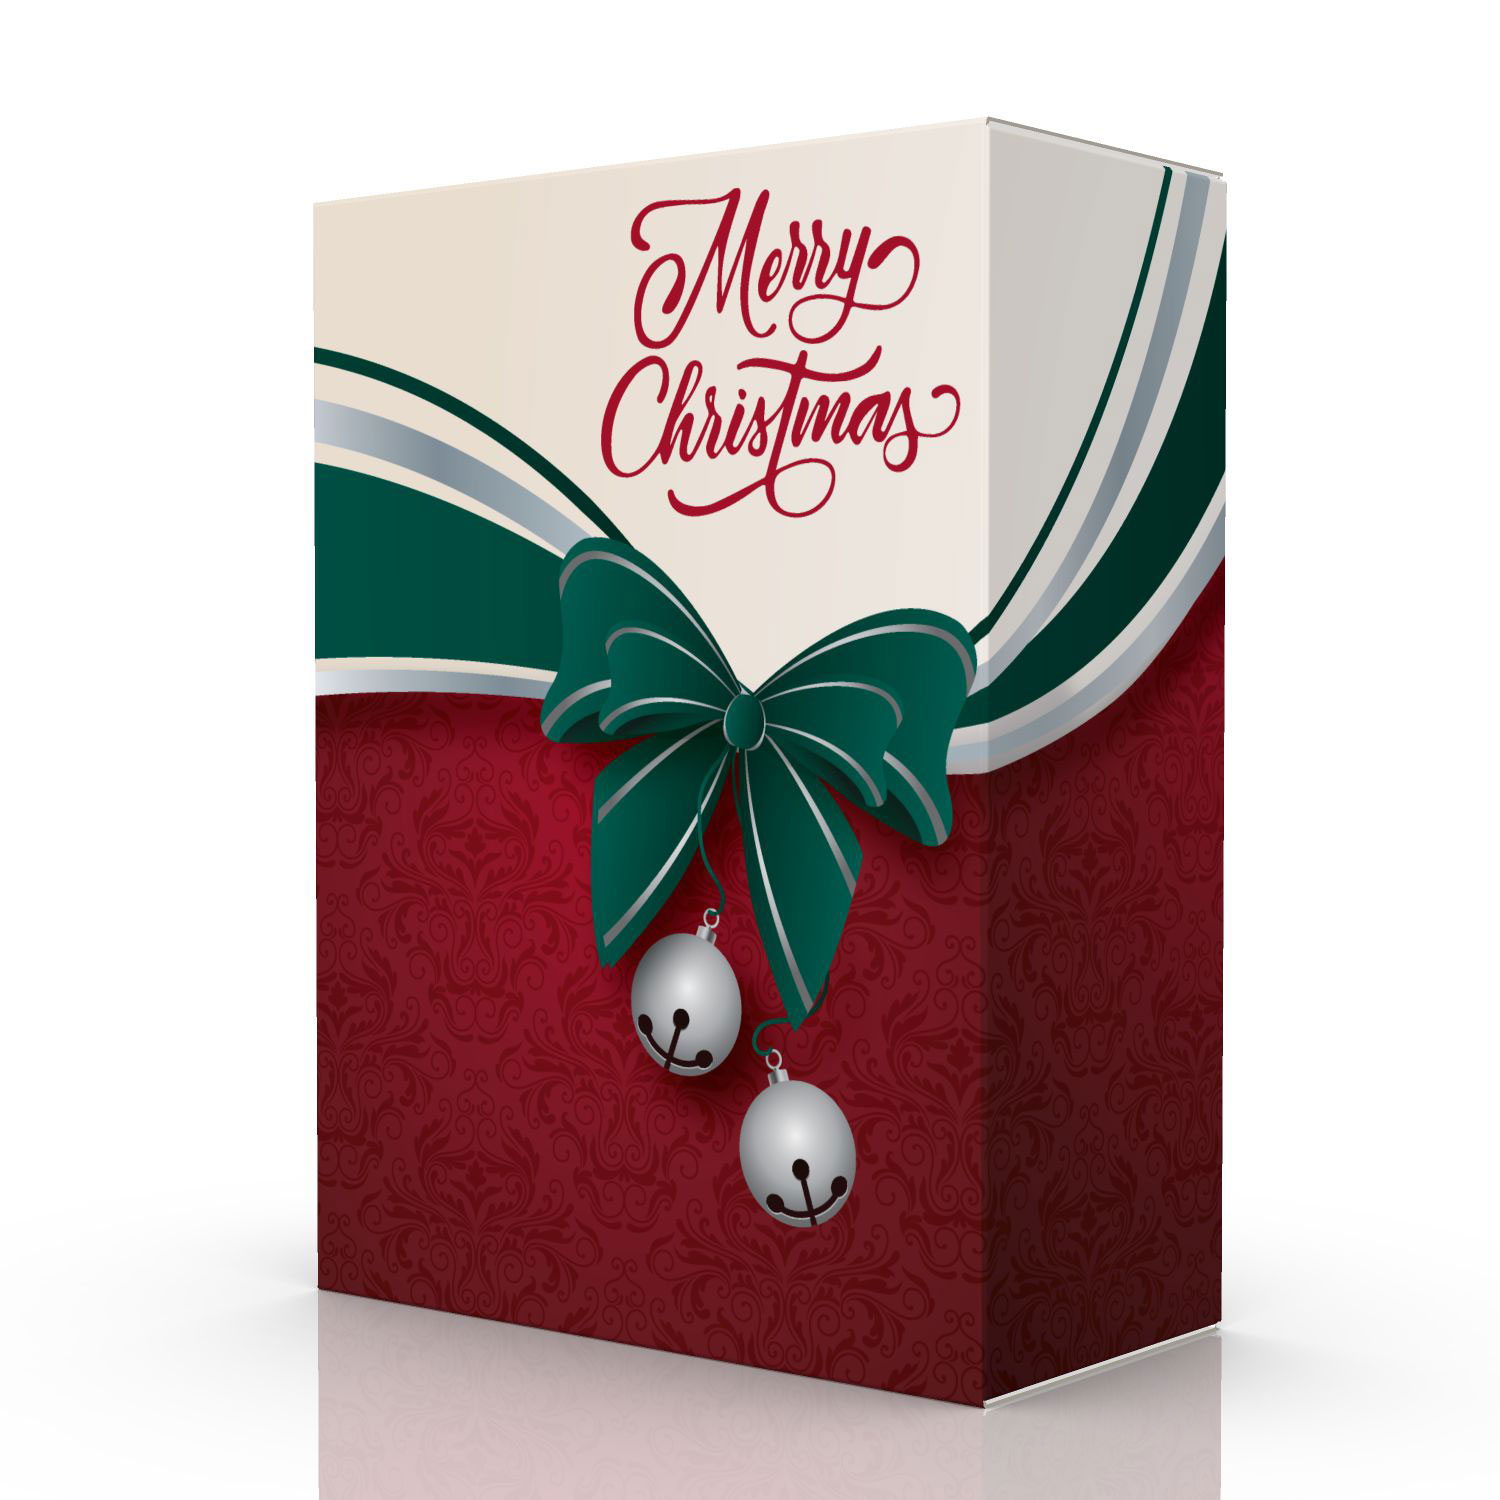 Merry Christmas gift box